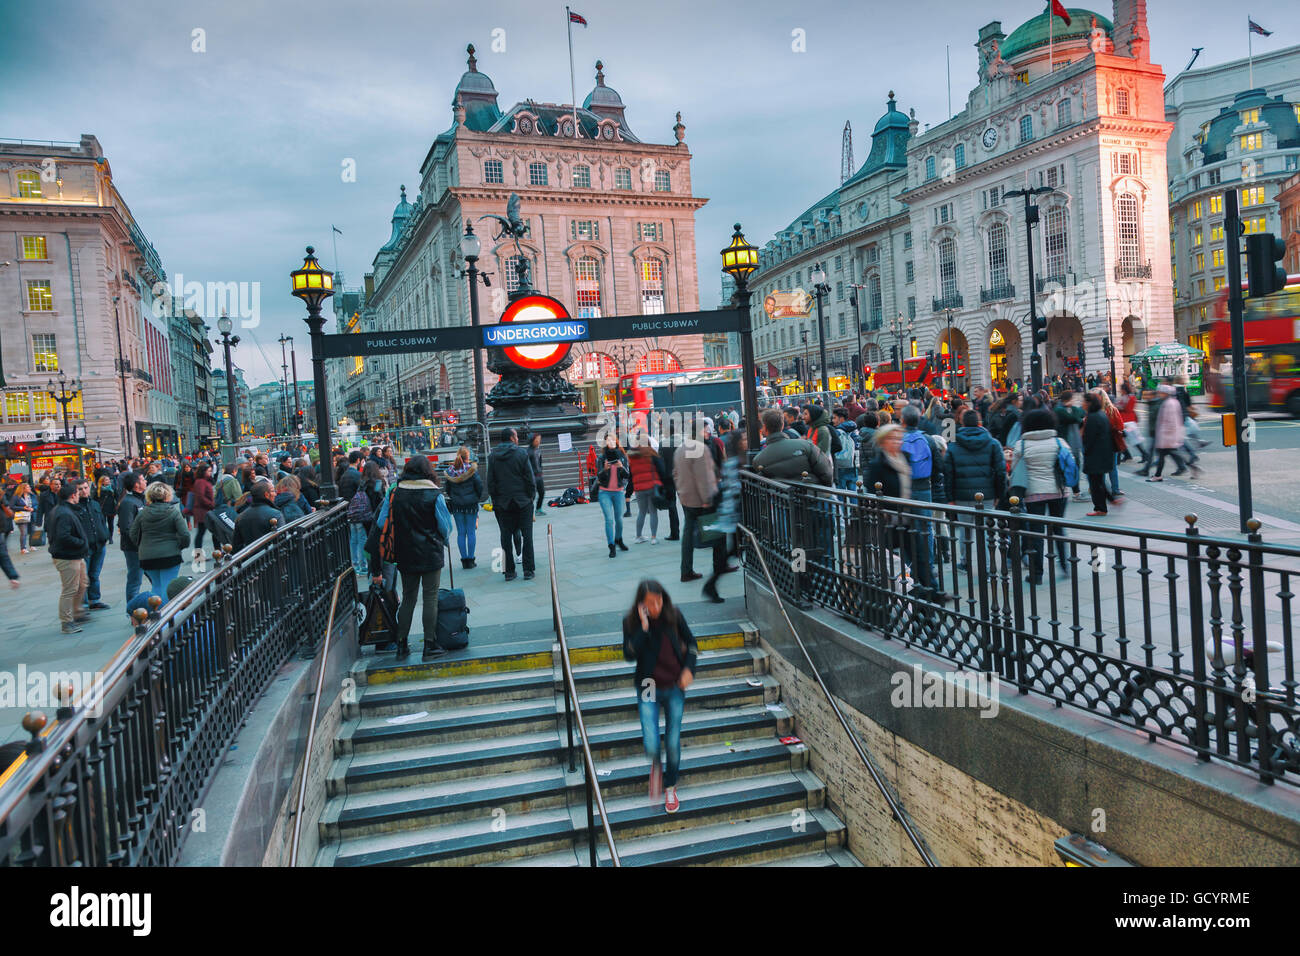 Picadilly Circus. London, England, United kingdom, Europe. - Stock Image